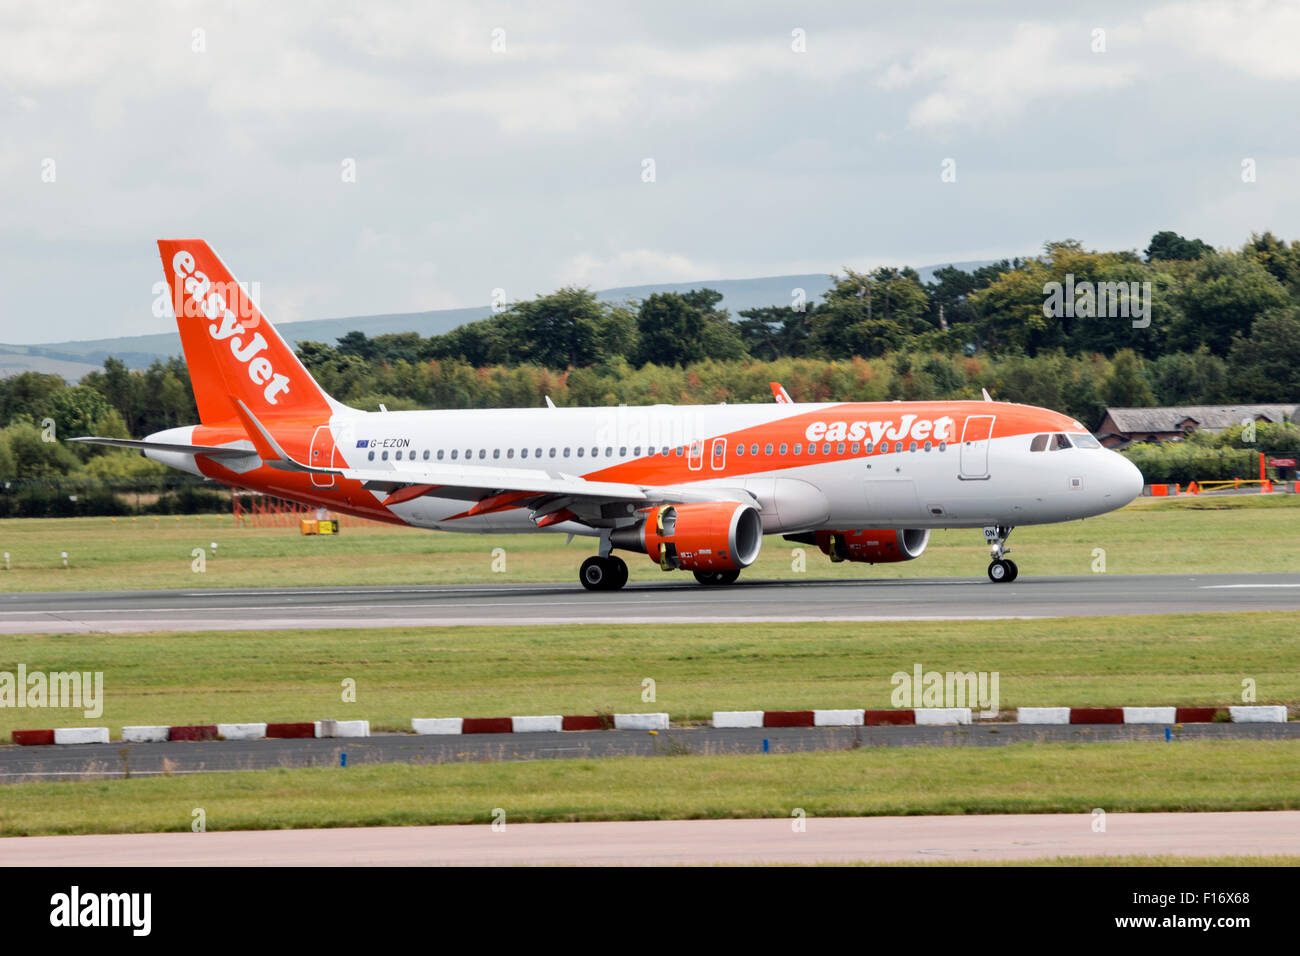 EasyJet Airbus A320-214 landed at Manchester Airport (UK) - Stock Image